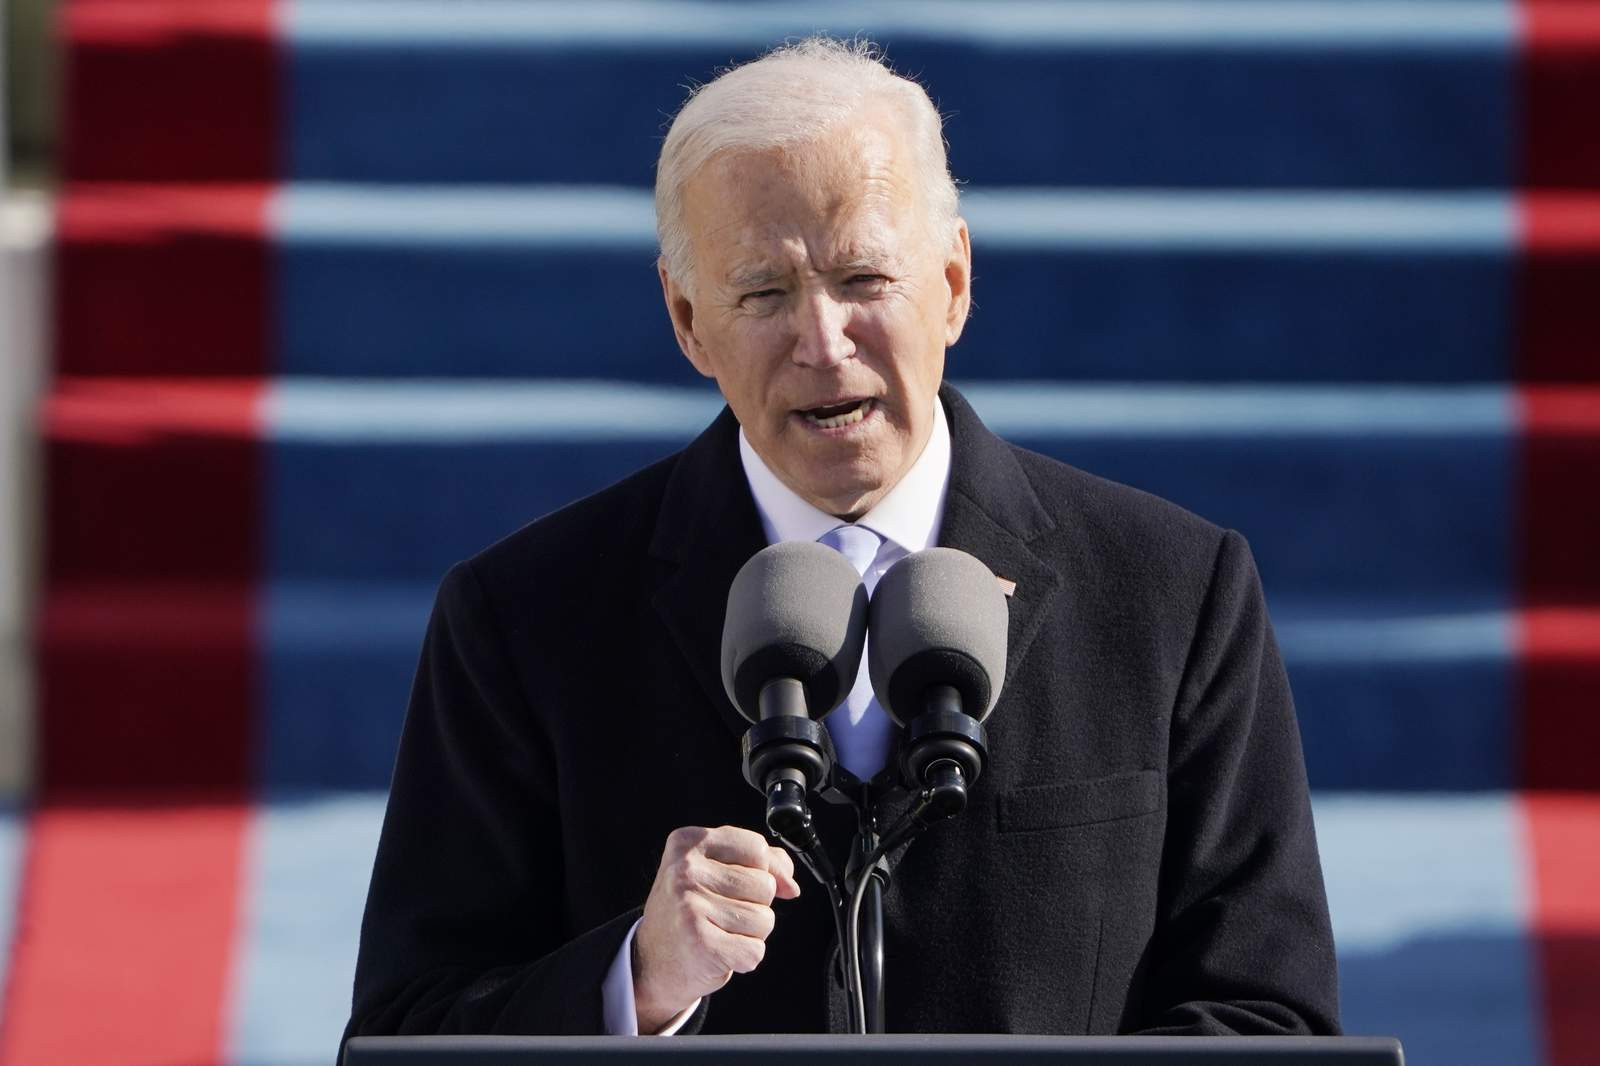 """""""If you?re ever working with me and I hear you treating another colleague with disrespect, I will fire you on the spot"""" - President Biden warns his incoming presidential appointees (video)"""